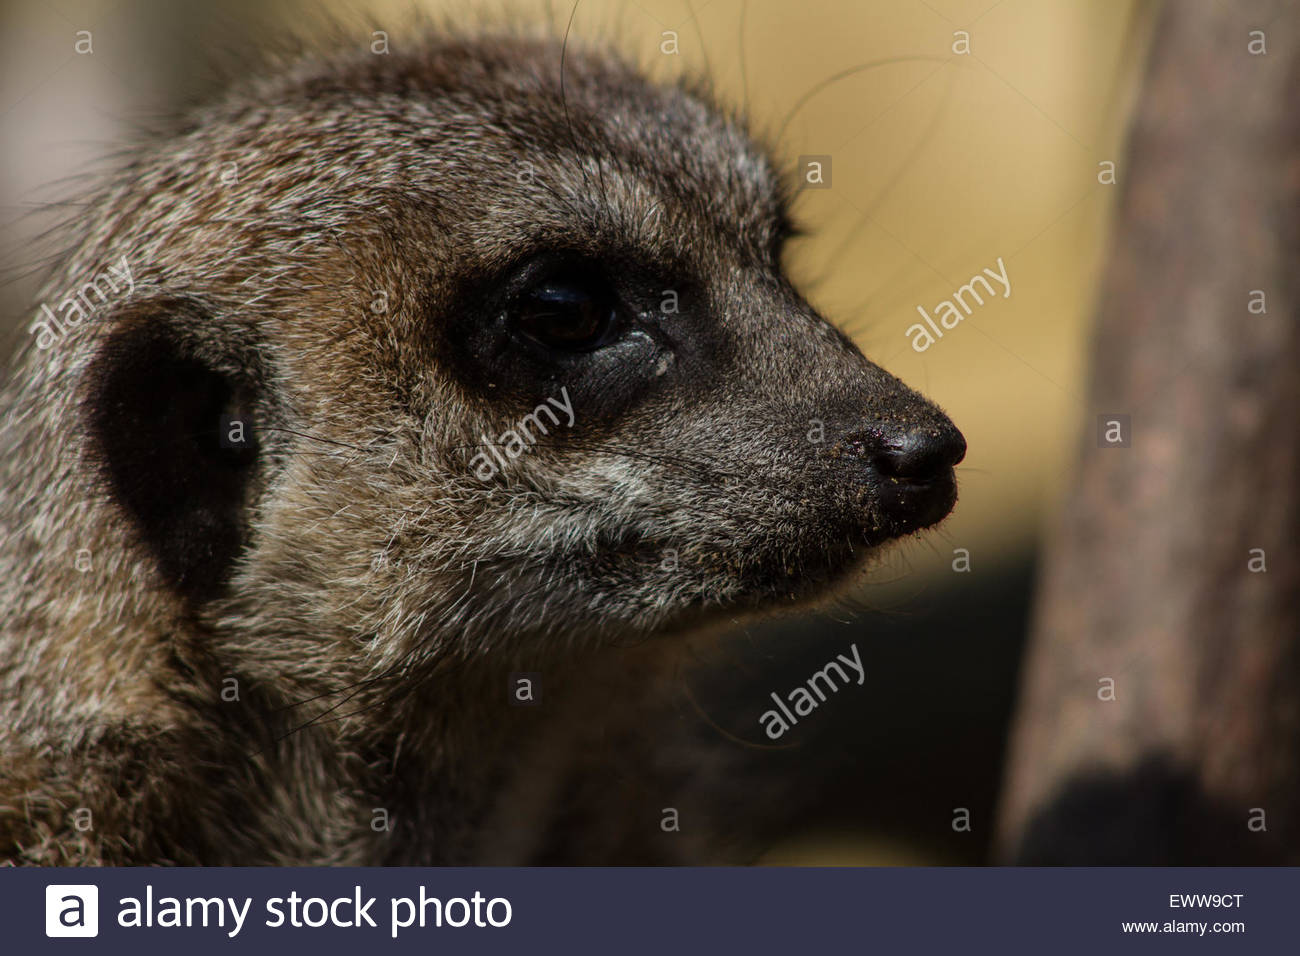 A meerkat looks towards an observer in the Jungle Zoo, Cleethorpes, East of England - Stock Image